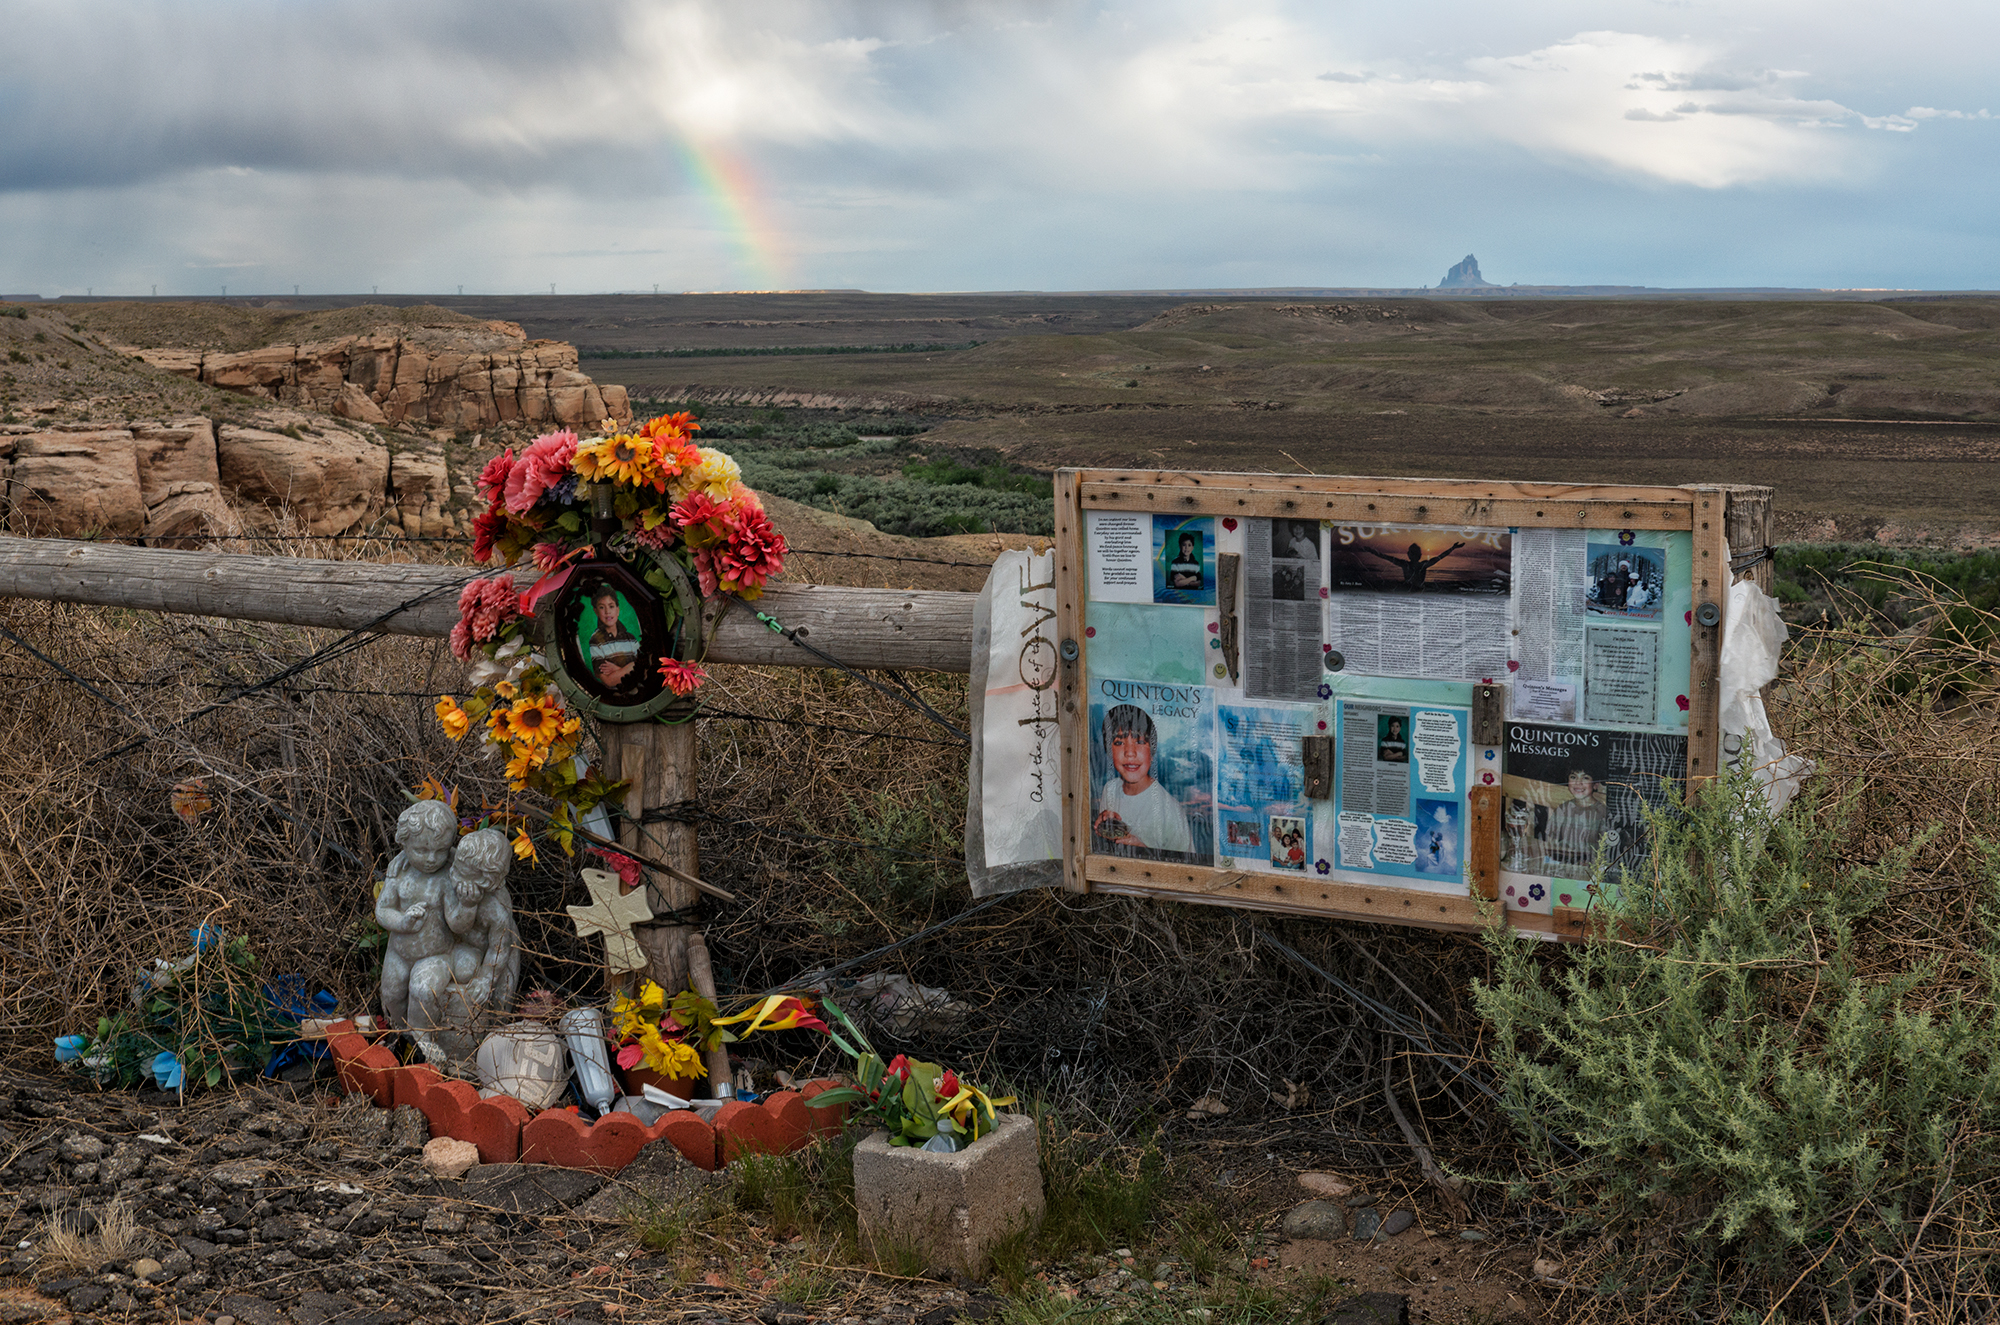 Quinton's Rainbow. Navajo Nation, Colorado, 2016